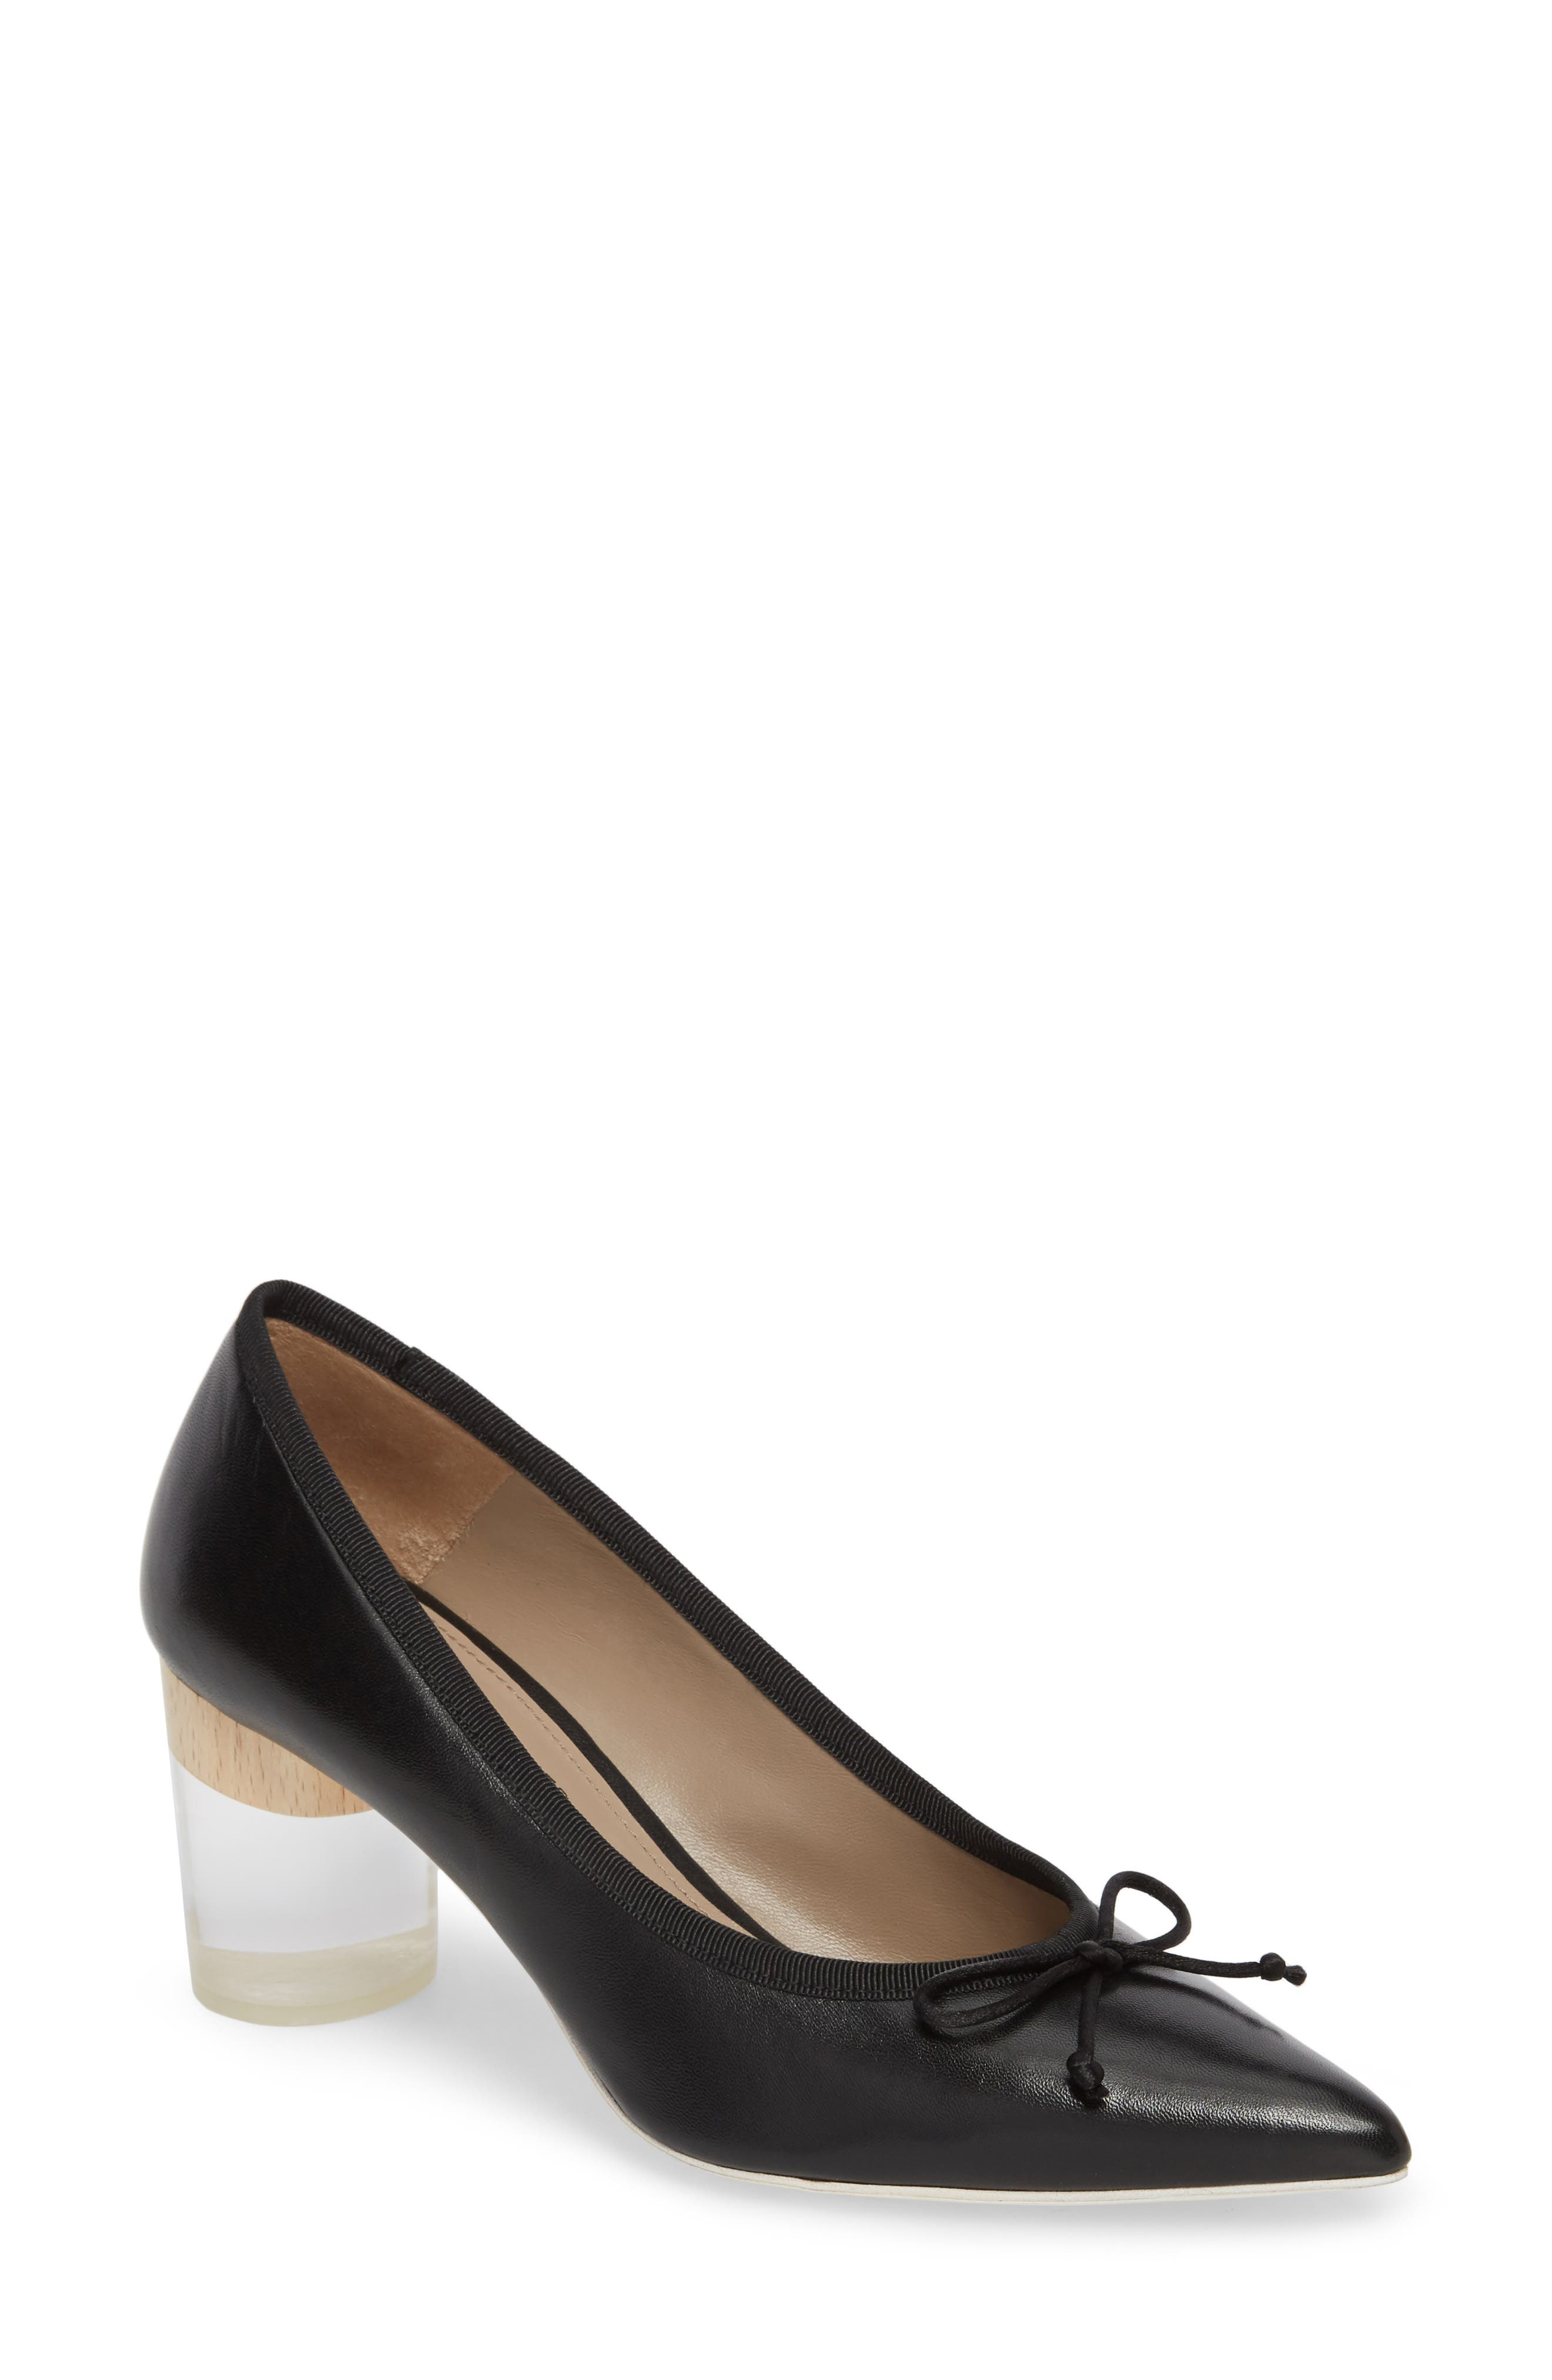 Main Image - Donald Pliner Asia Pointy Toe Pump (Women)